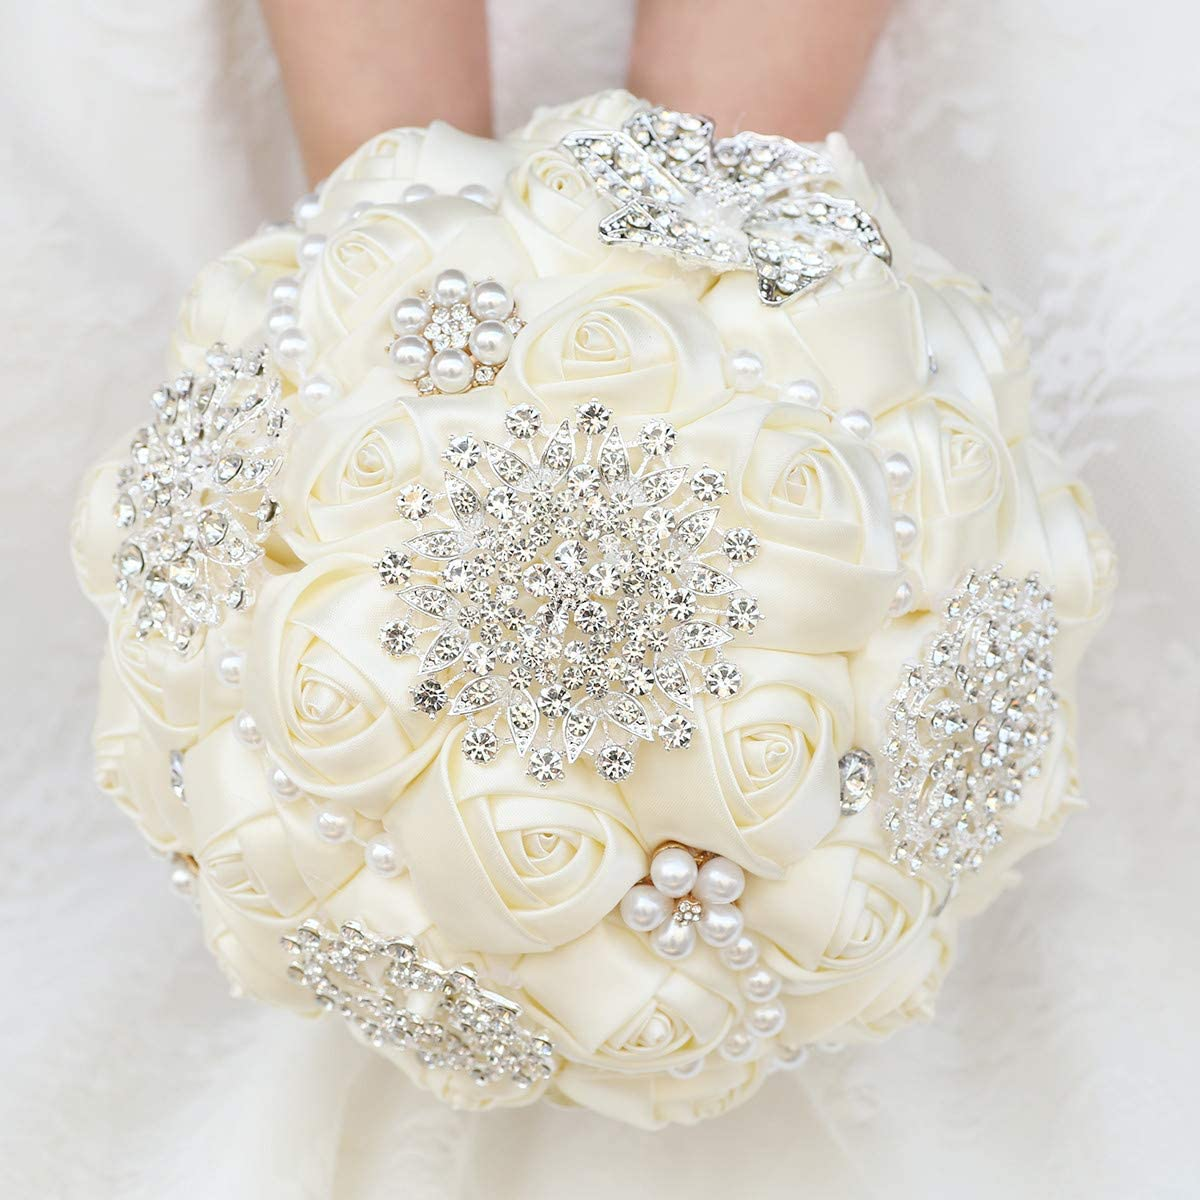 Desuness Bombing free shipping Wedding Bouquet Bride Holdi Brooch Rose Max 67% OFF